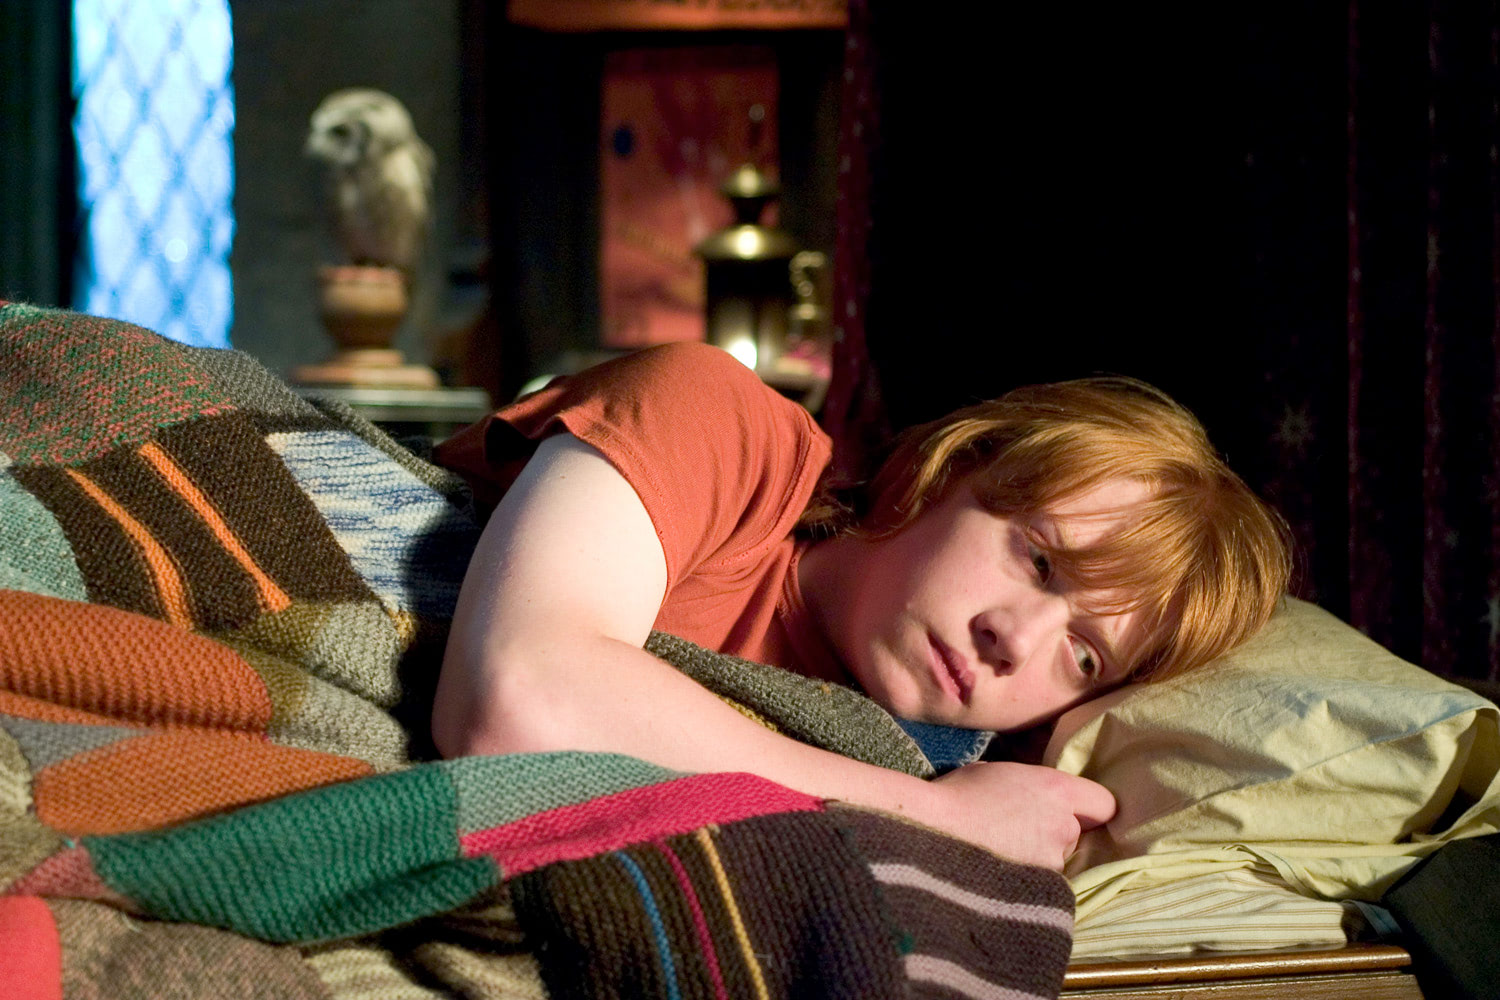 Ron Weasley in bed